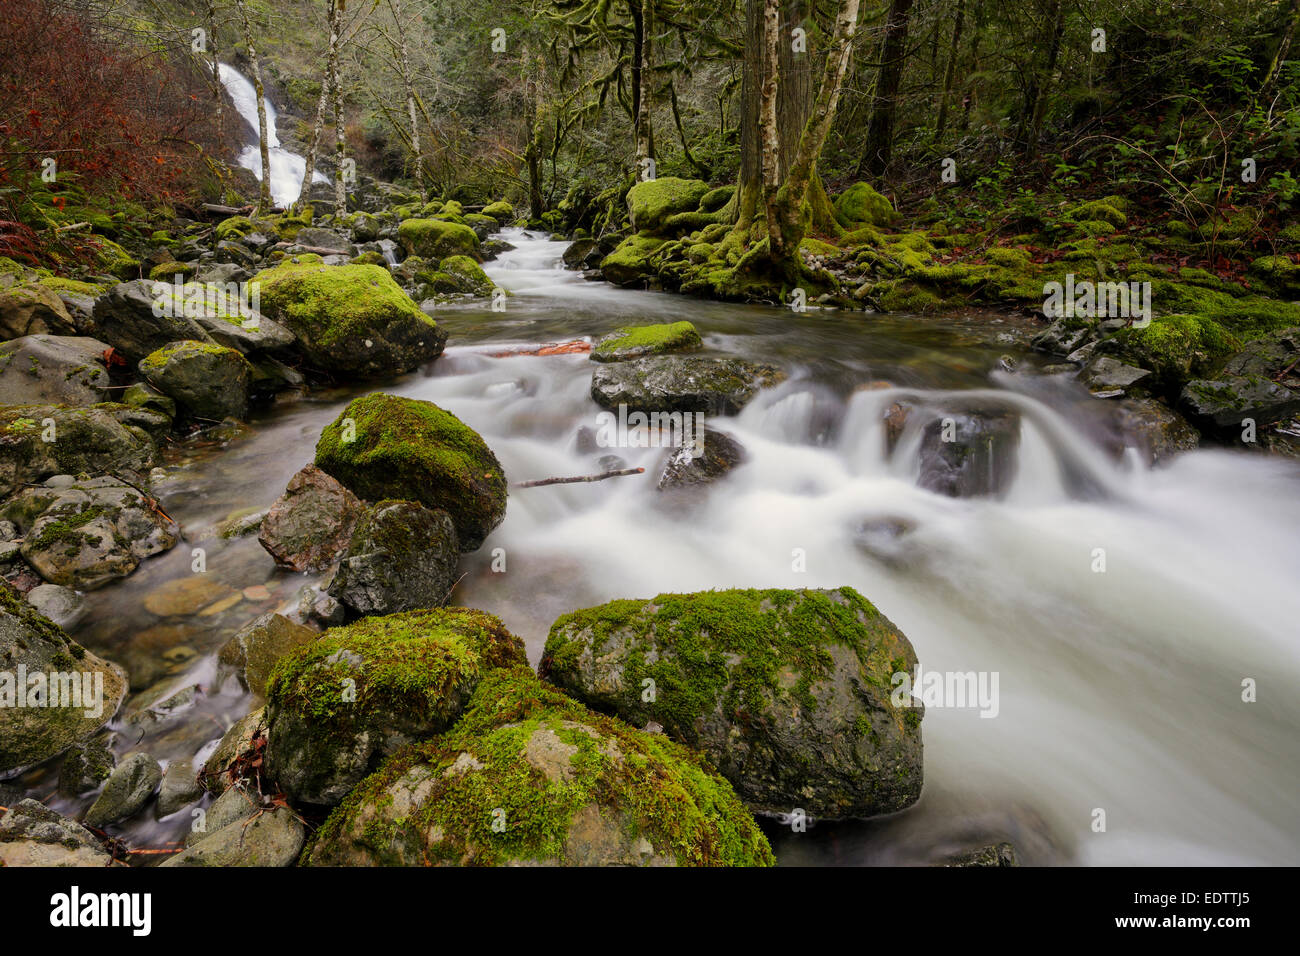 Todd Creek and waterfall in Sooke Potholes Park-Sooke, British Columbia, Canada. - Stock Image